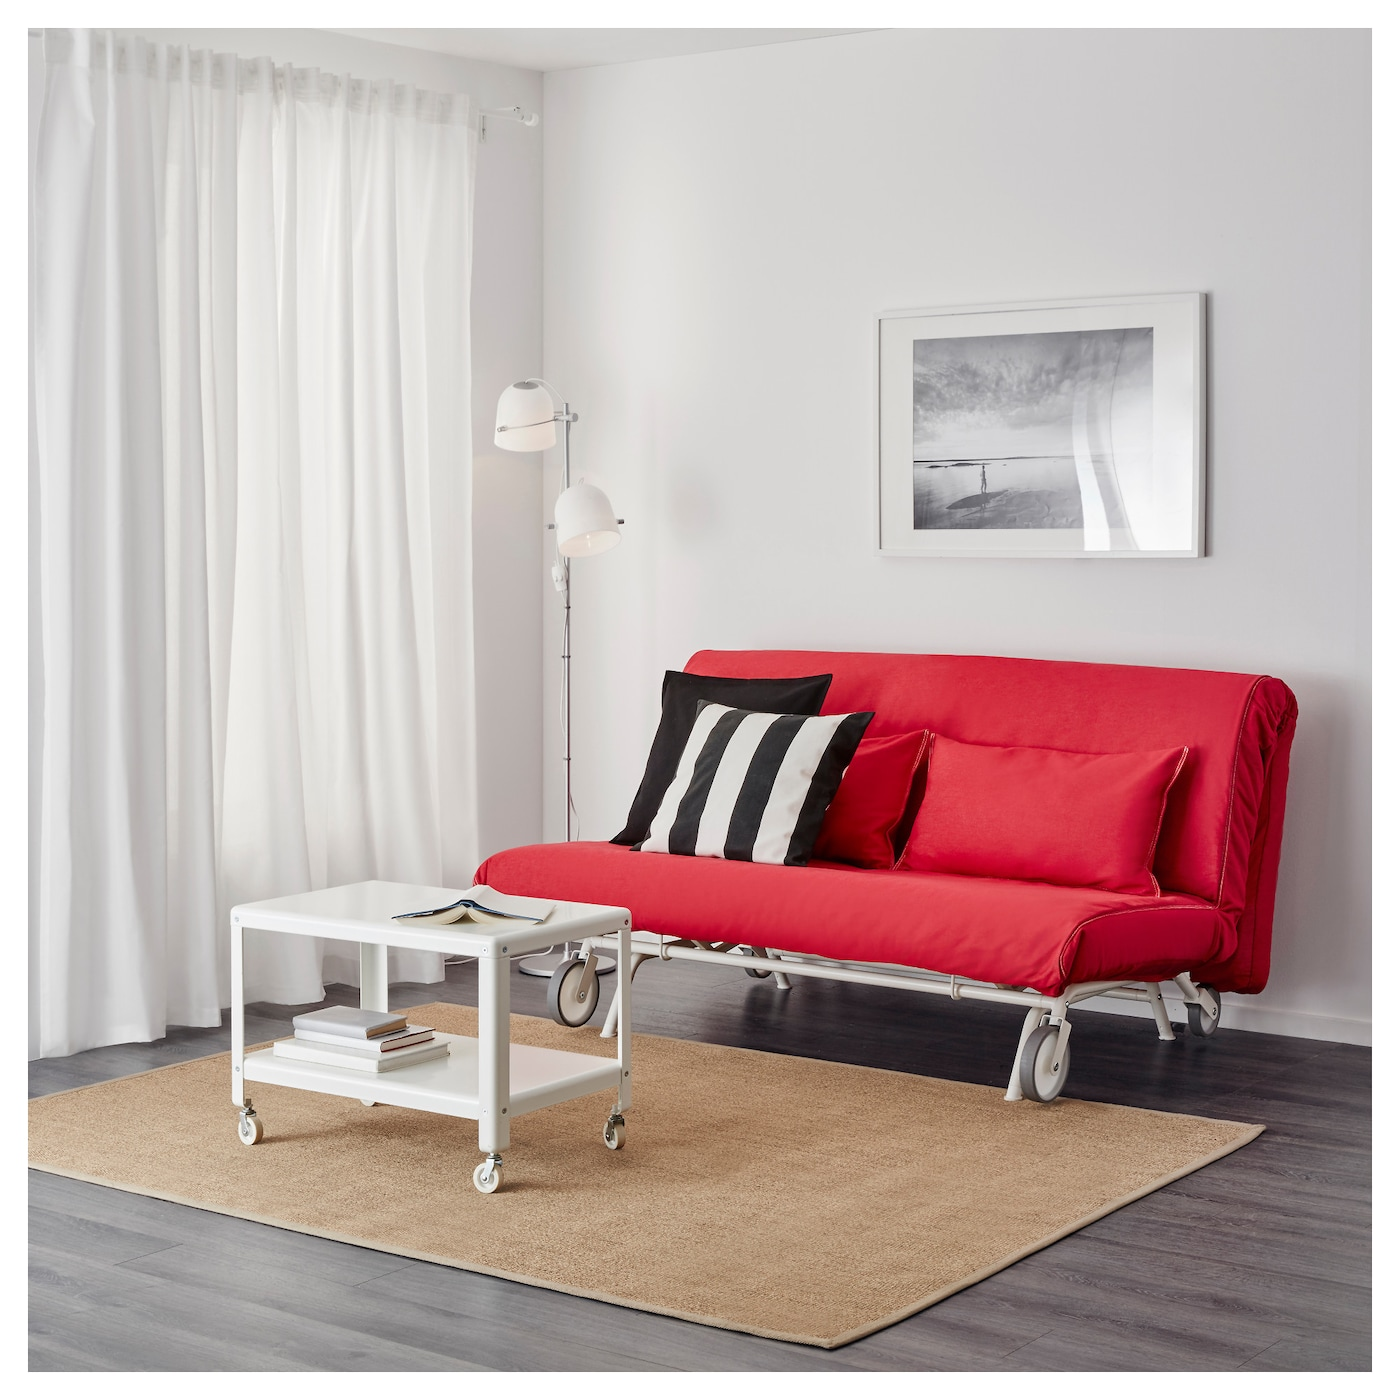 IKEA IKEA PS LÖVÅS two-seat sofa-bed A simple, firm foam mattress for use every night.